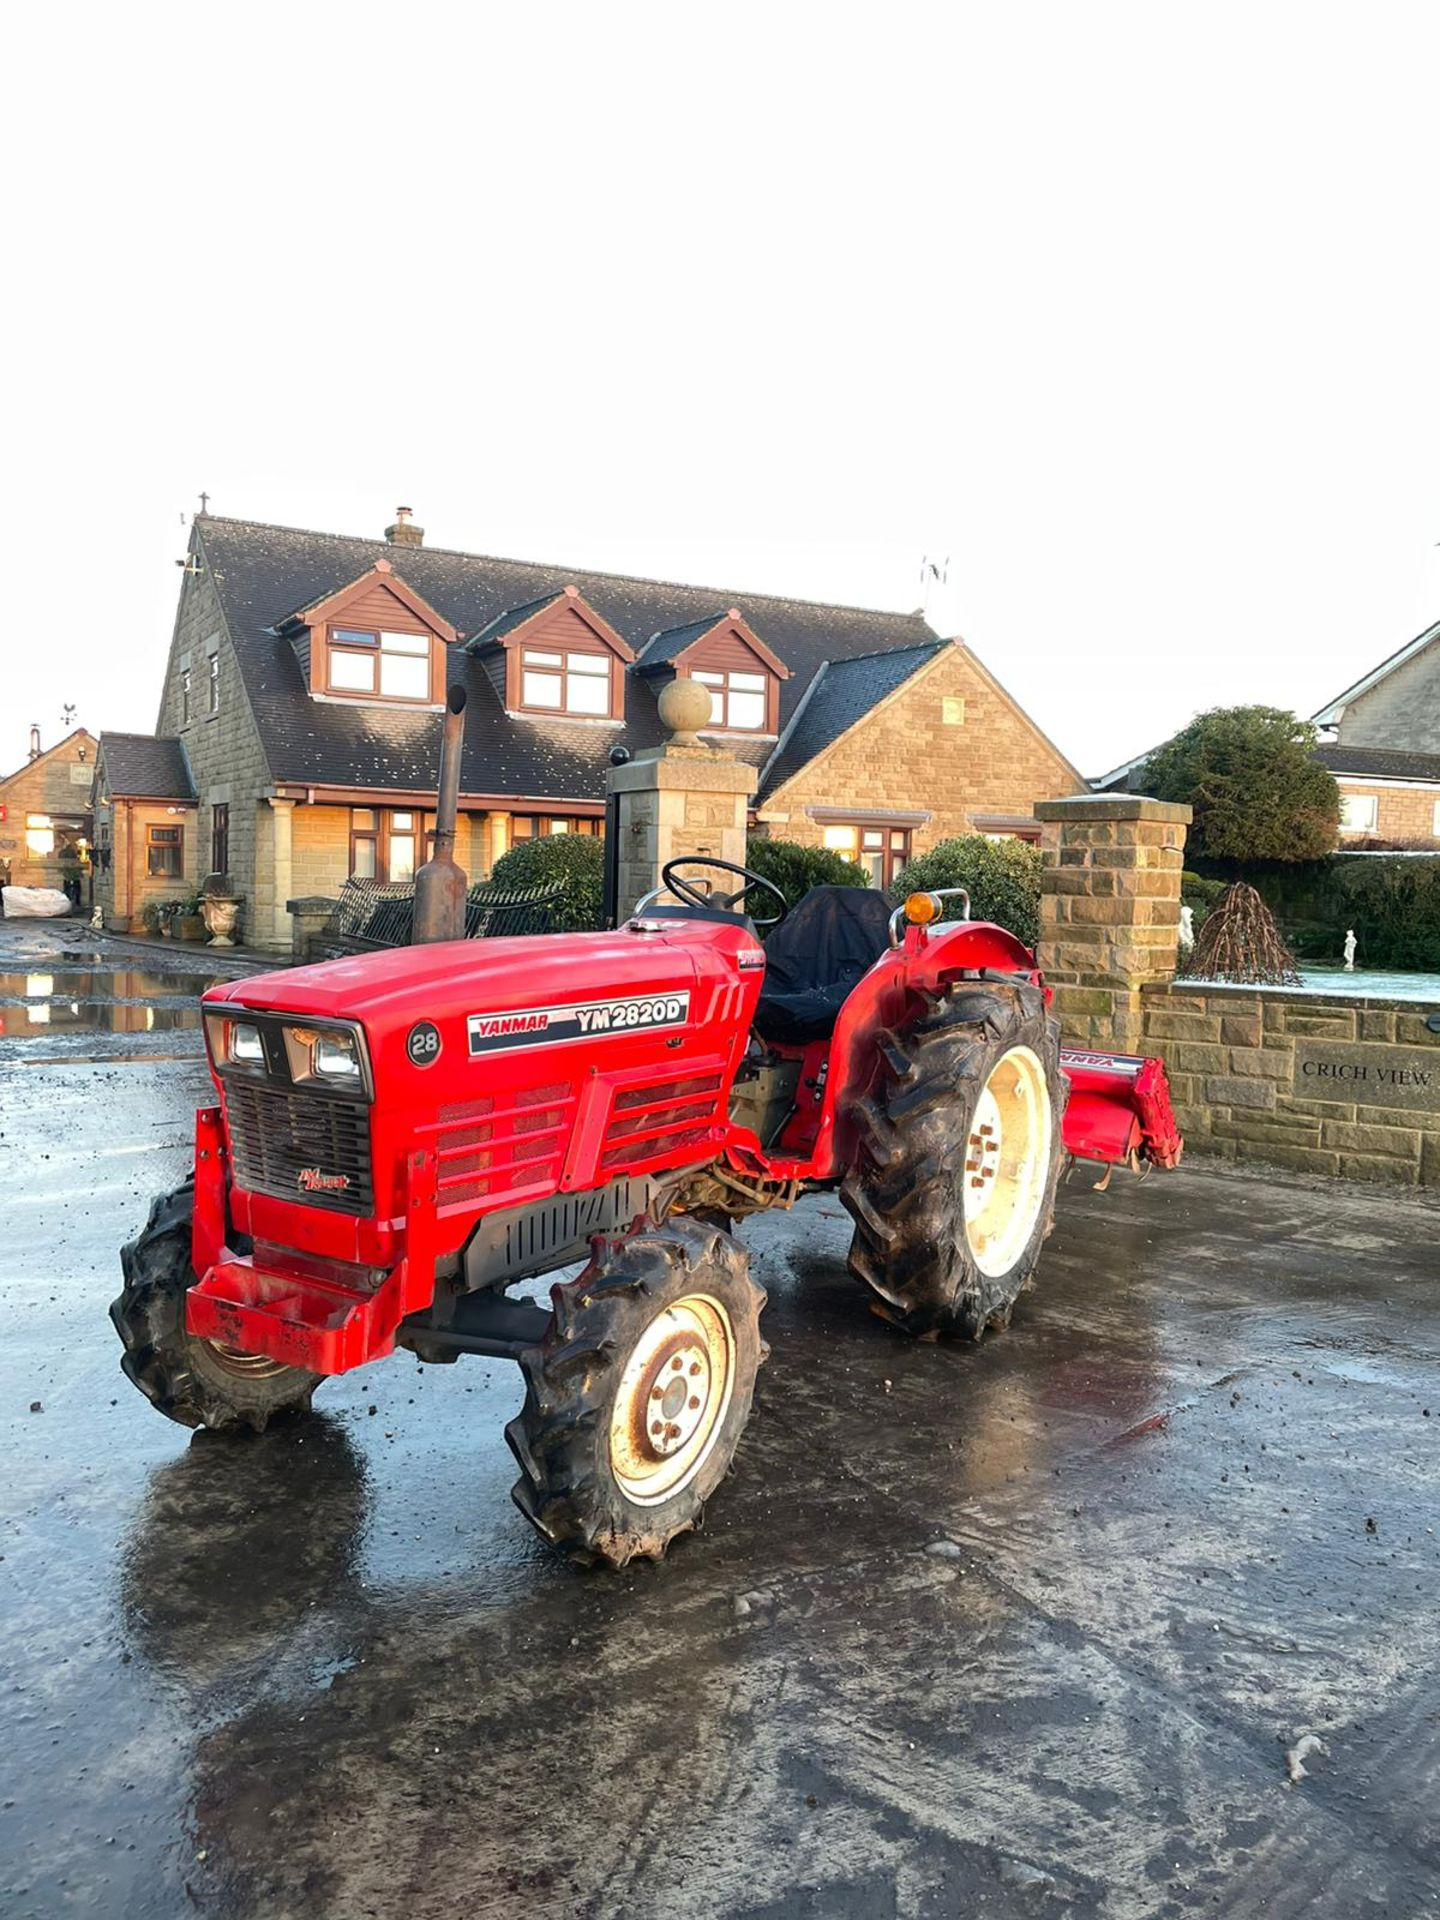 YANMAR YM2820D TRACTOR, 4 WHEEL DRIVE, WITH ROTATOR, RUNS AND WORKS, 3 POINT LINKAGE *PLUS VAT* - Image 2 of 8